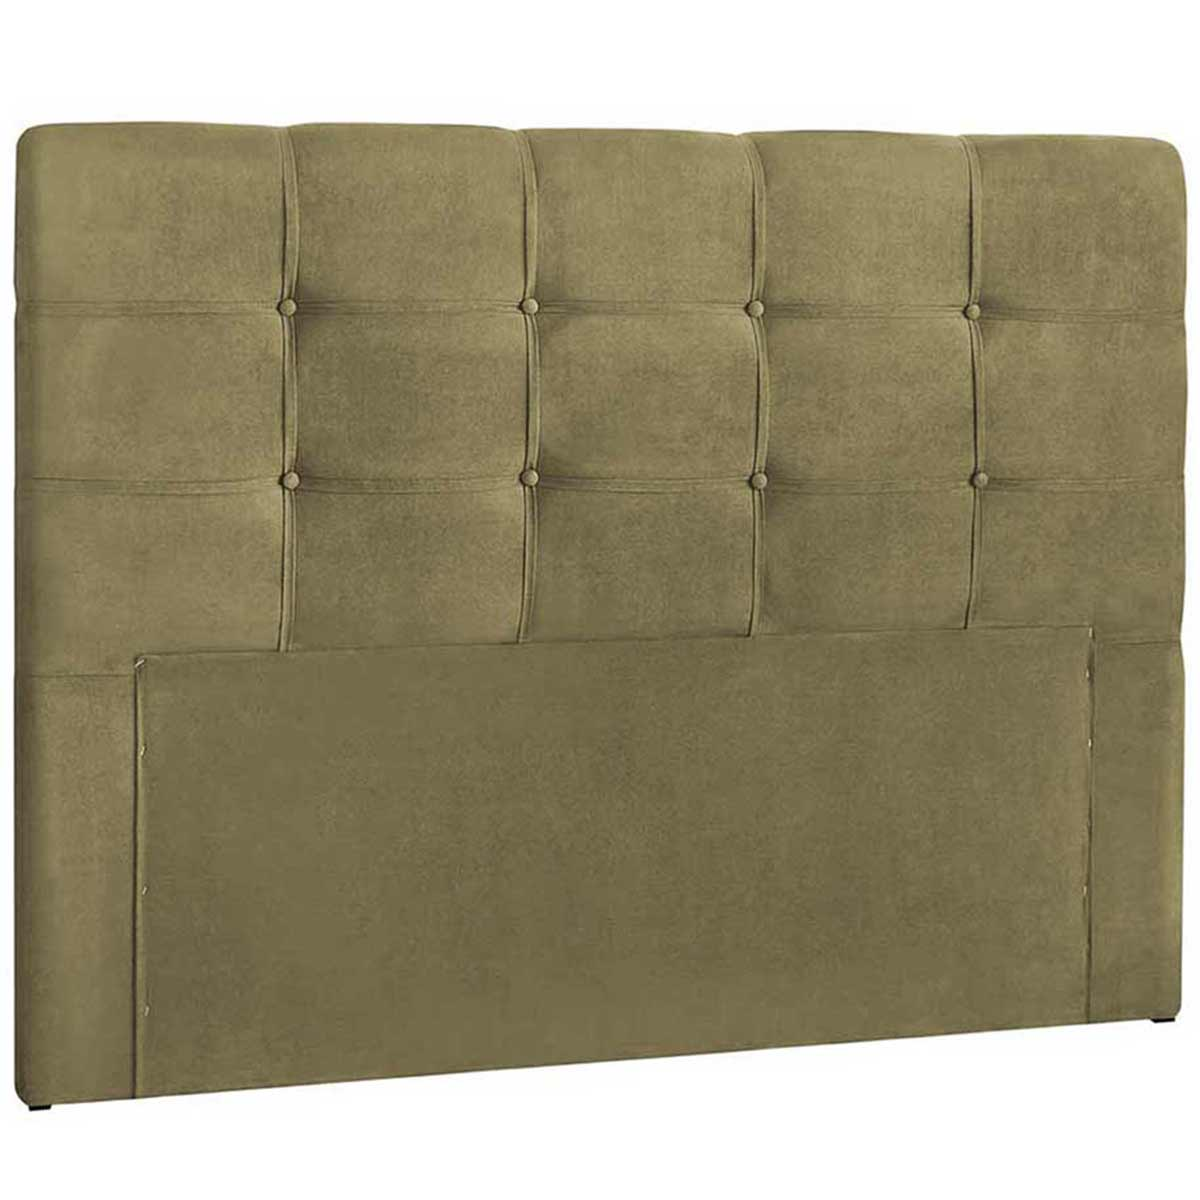 Cabeceira Clean Casal 140 cm Suede Bege II Simbal